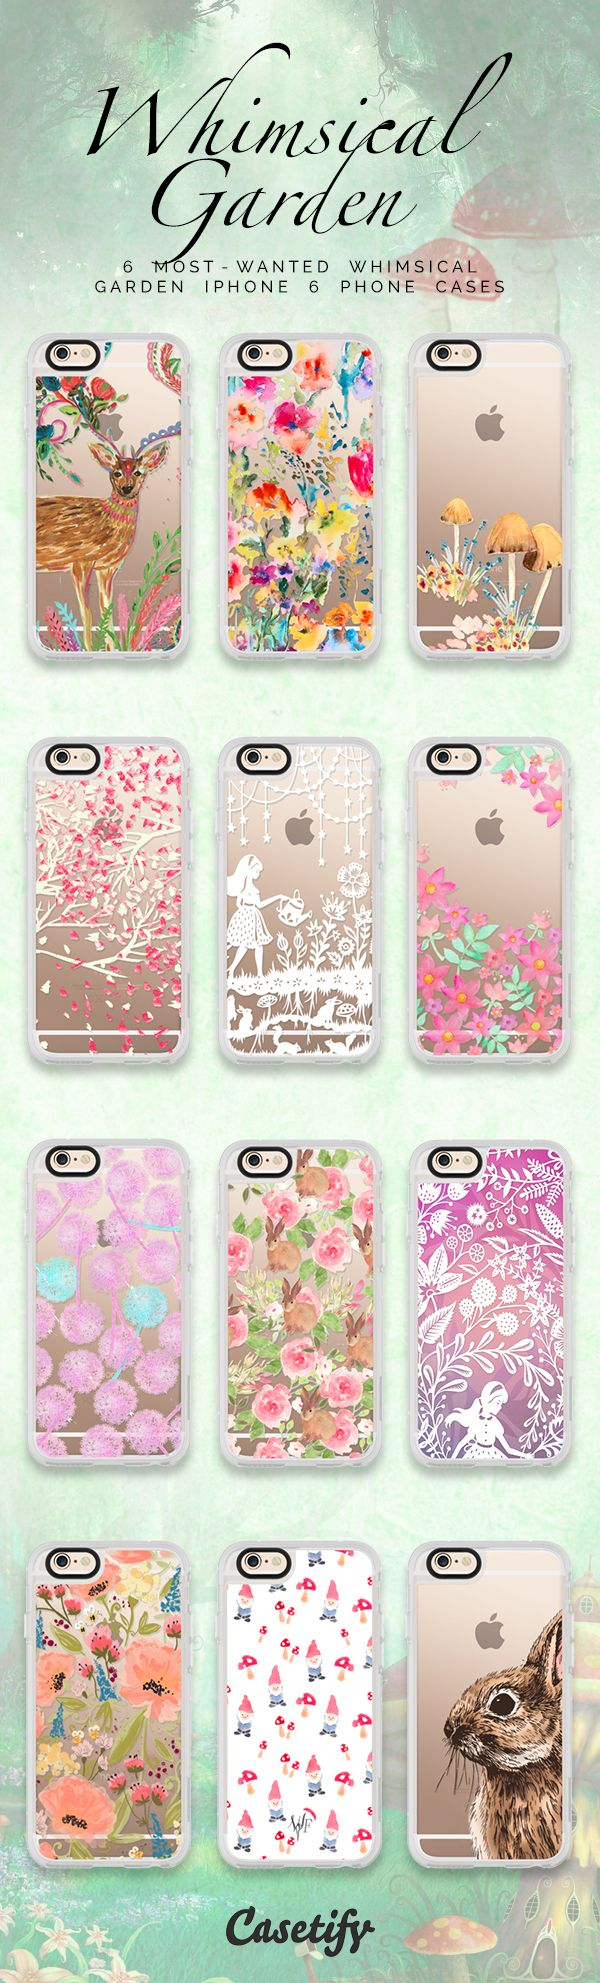 Top 12 #whimsical #garden iPhone 6S phone cases | Click through to shop >>> https://www.casetify.com/artworks/9O7TiwrWoD #phonecase #protective #floral #floralprint | @casetify